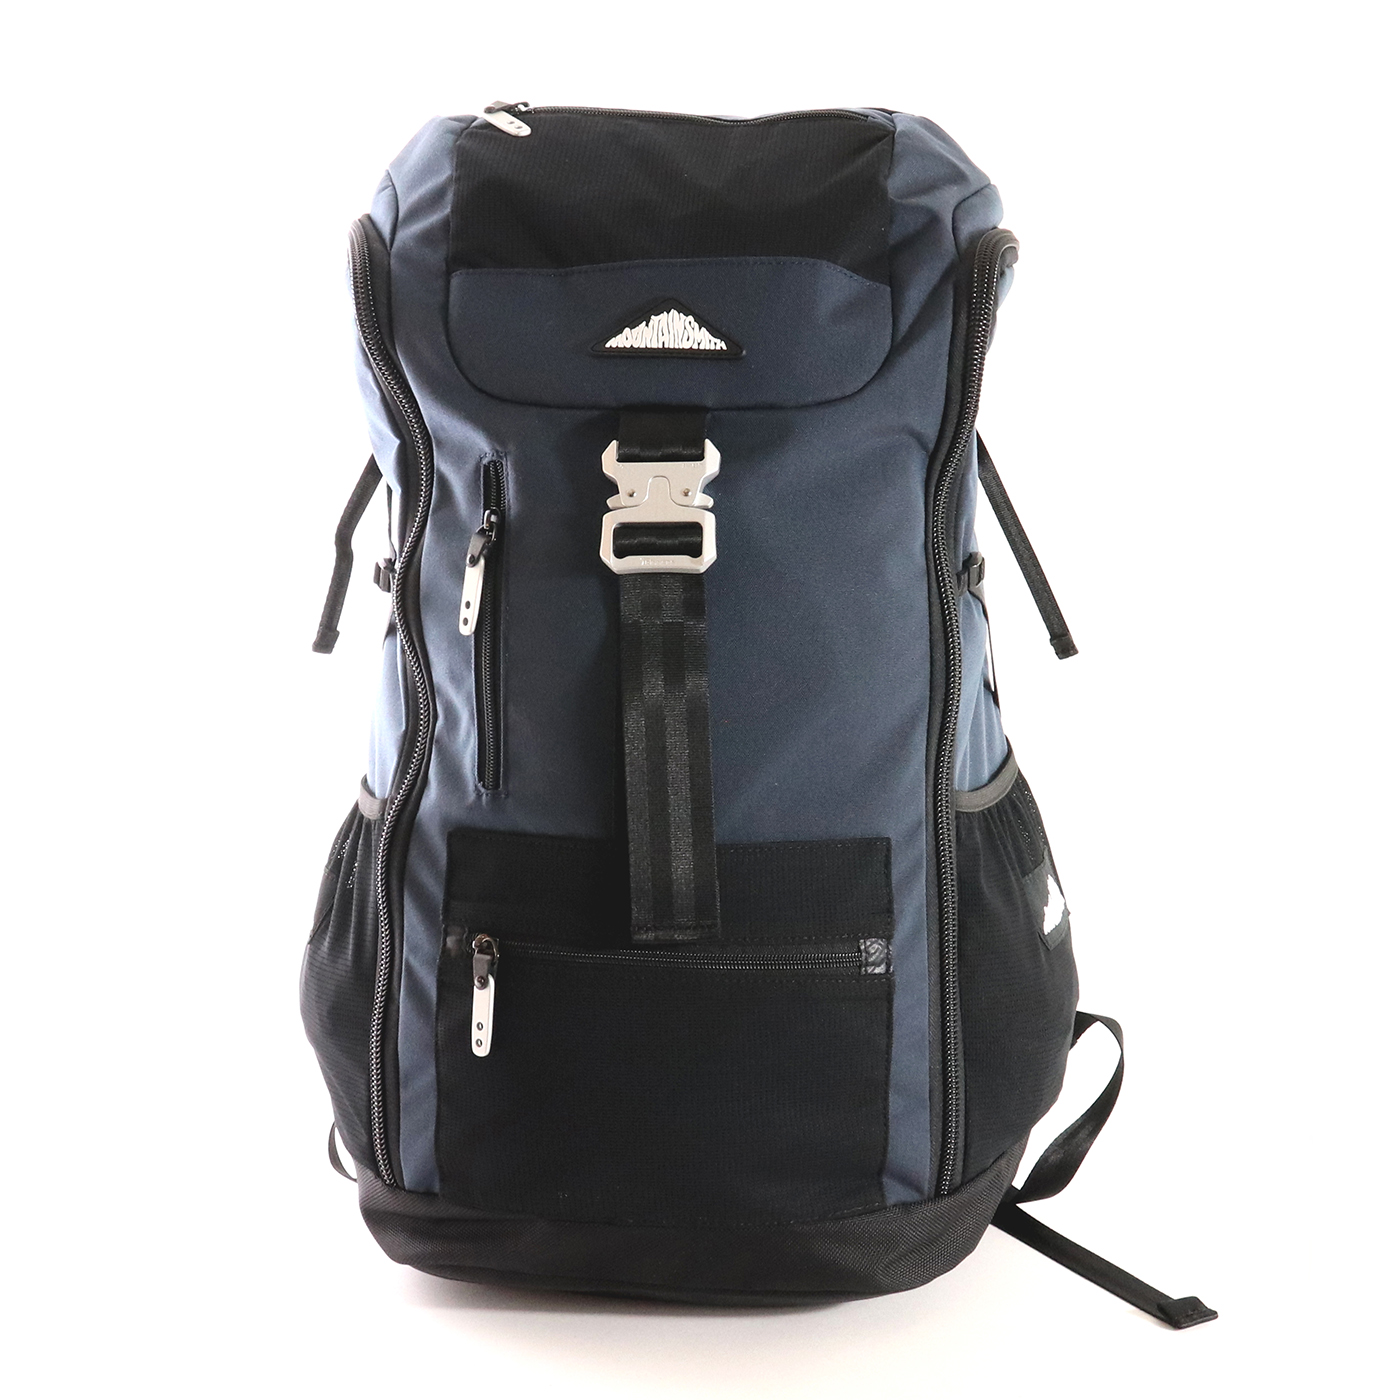 product: WALCOTT / color: NAVY 1